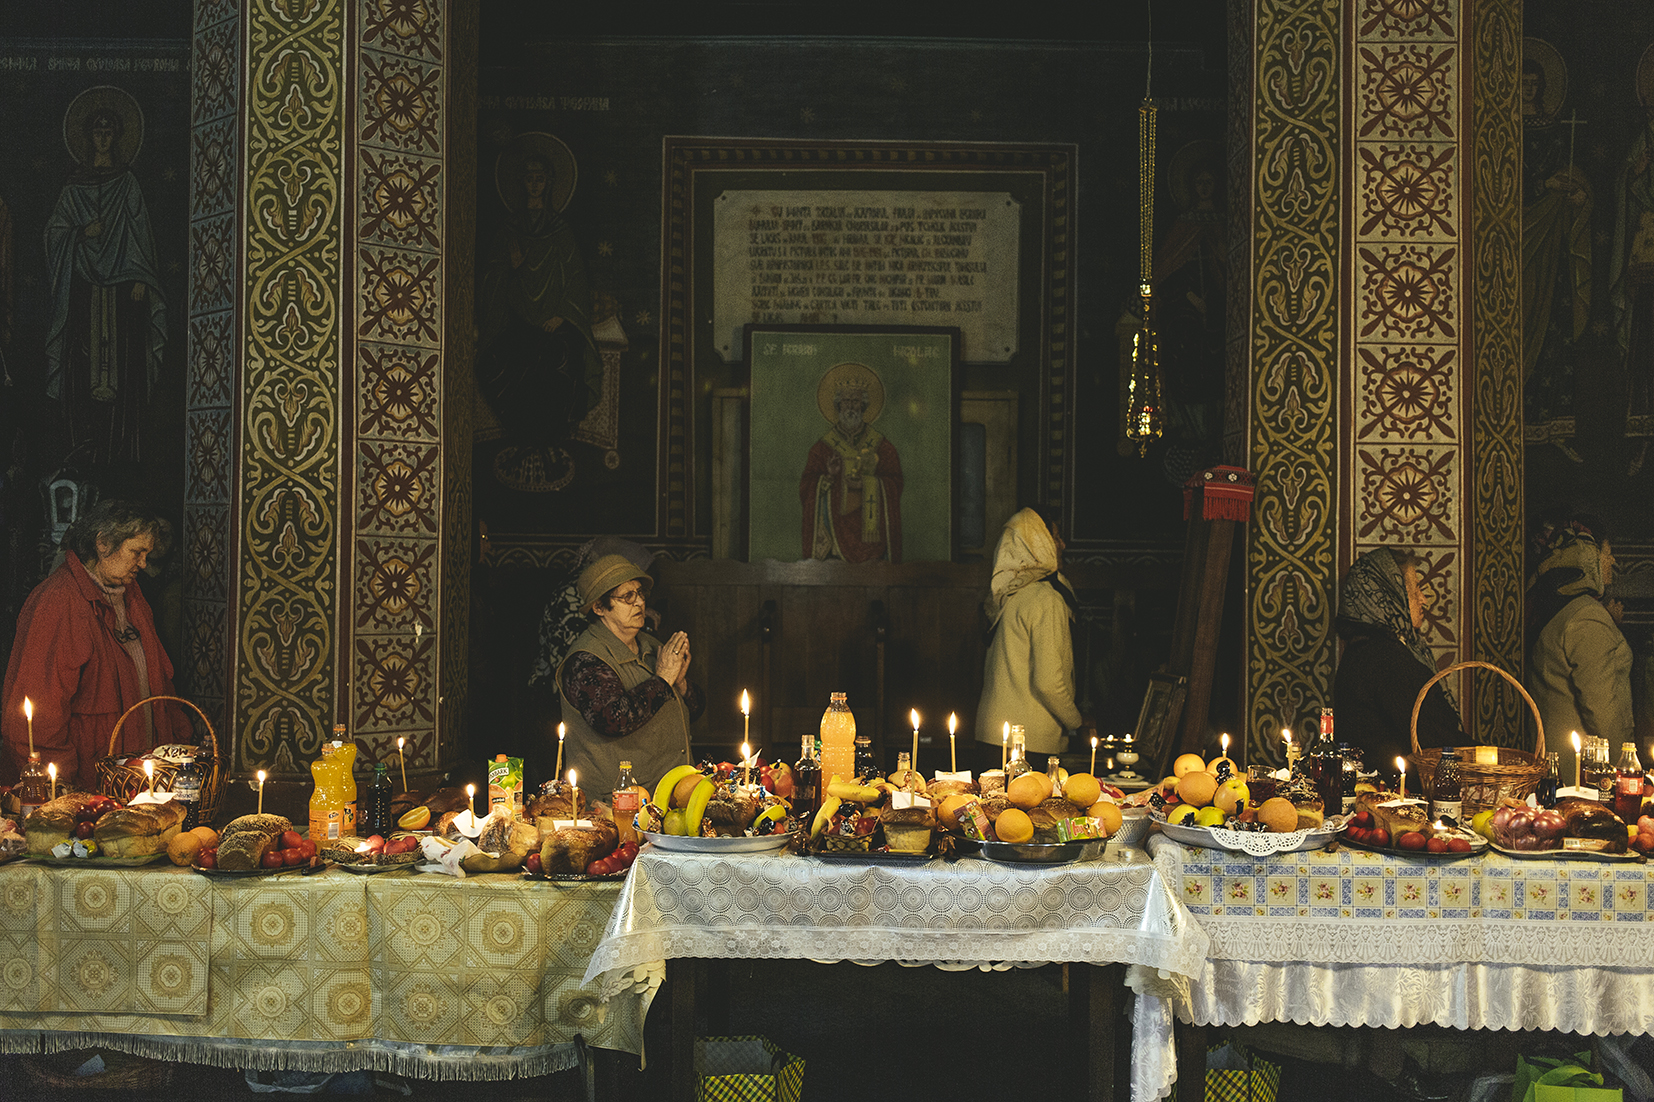 Food is blessed in the orthodox church, the day of Saints Constantine and Helena, Sulina, Romania, 2015